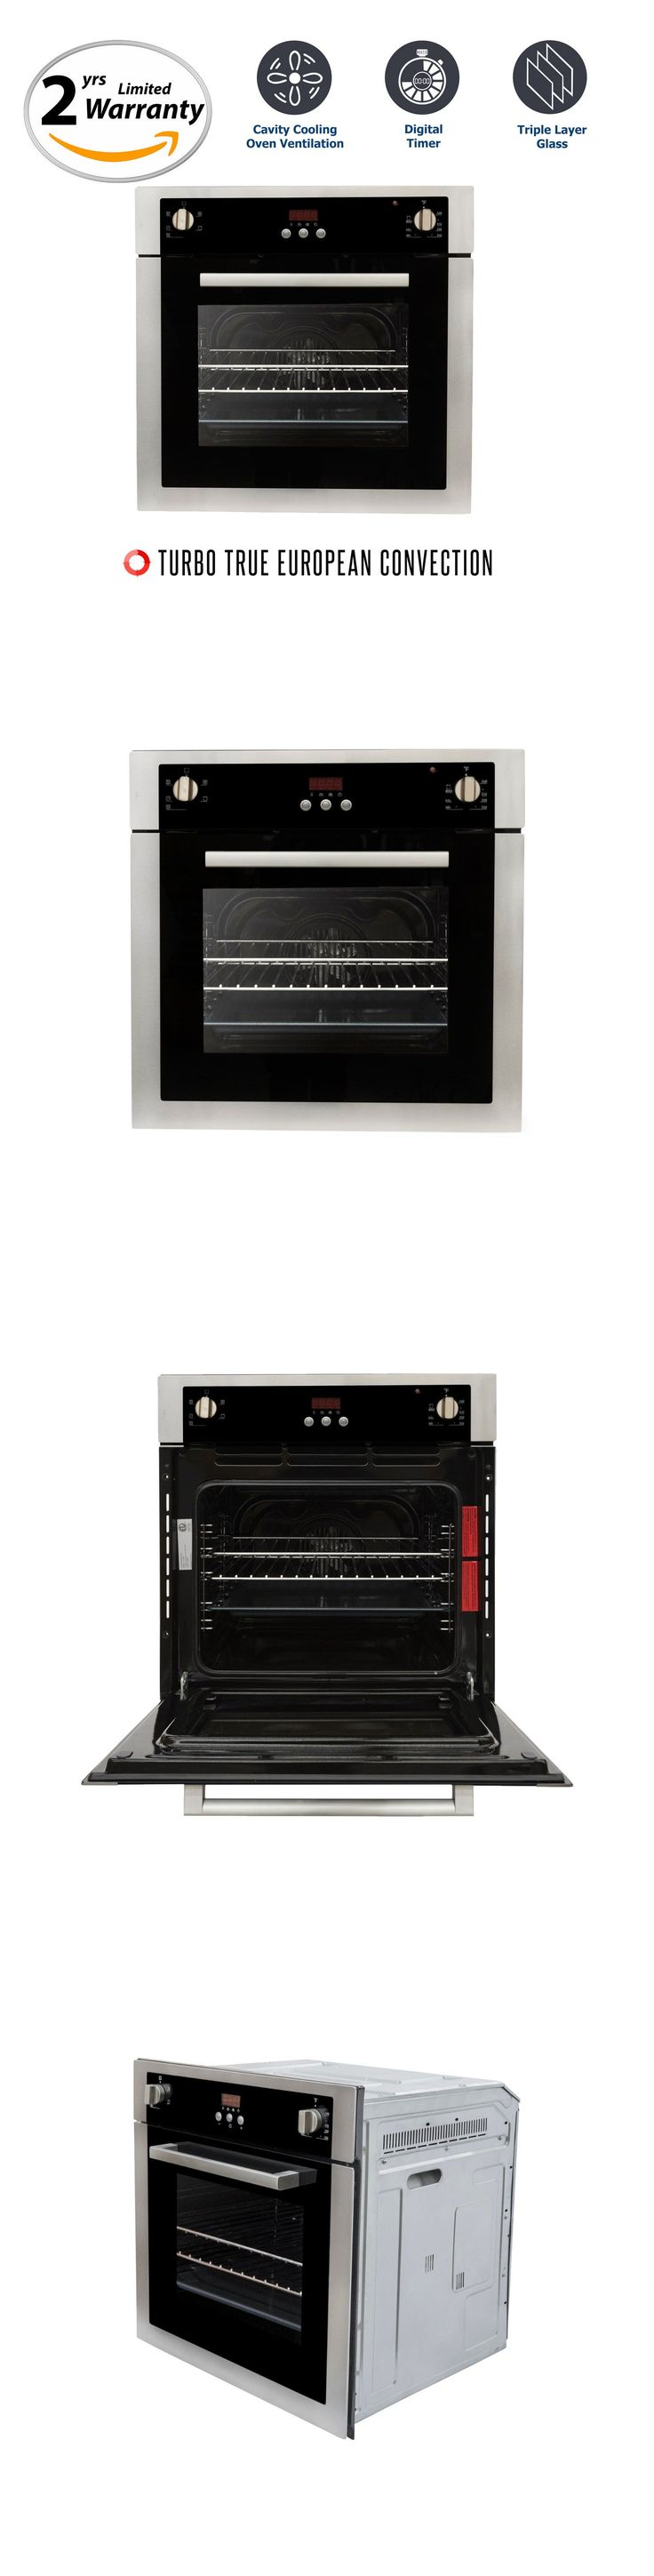 Wall Ovens 71318: 24 Built In Electric Wall Oven With Convection ***Brand New*** (C51eix) -> BUY IT NOW ONLY: $749.99 on eBay!